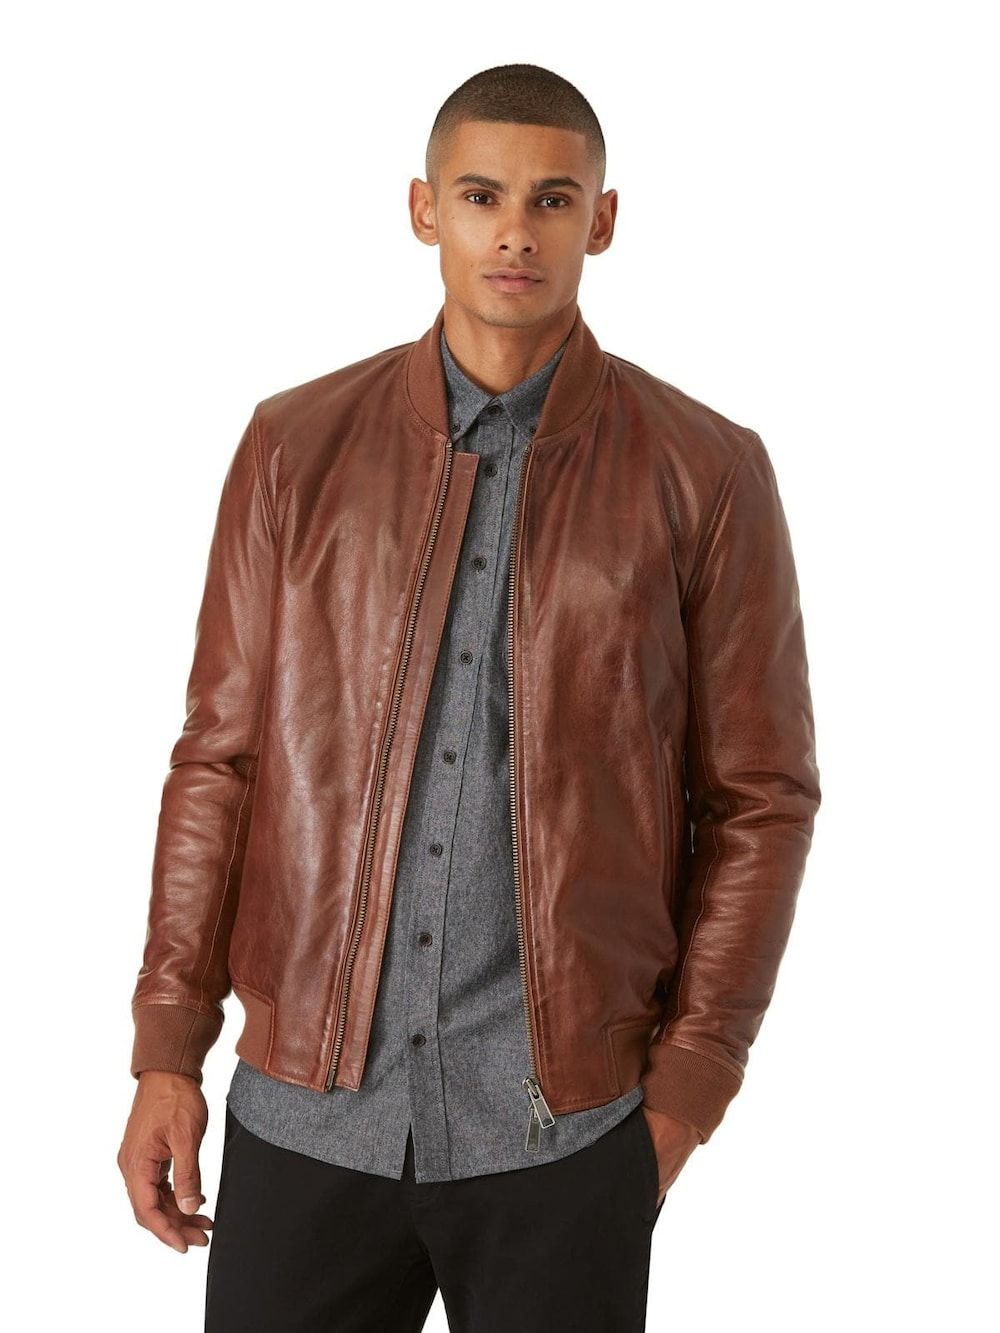 Leather Bomber Jacket In Tan Frank And Oak Shop Mens Clothing Classic Leather Jacket Mens Outfits [ 1333 x 1000 Pixel ]